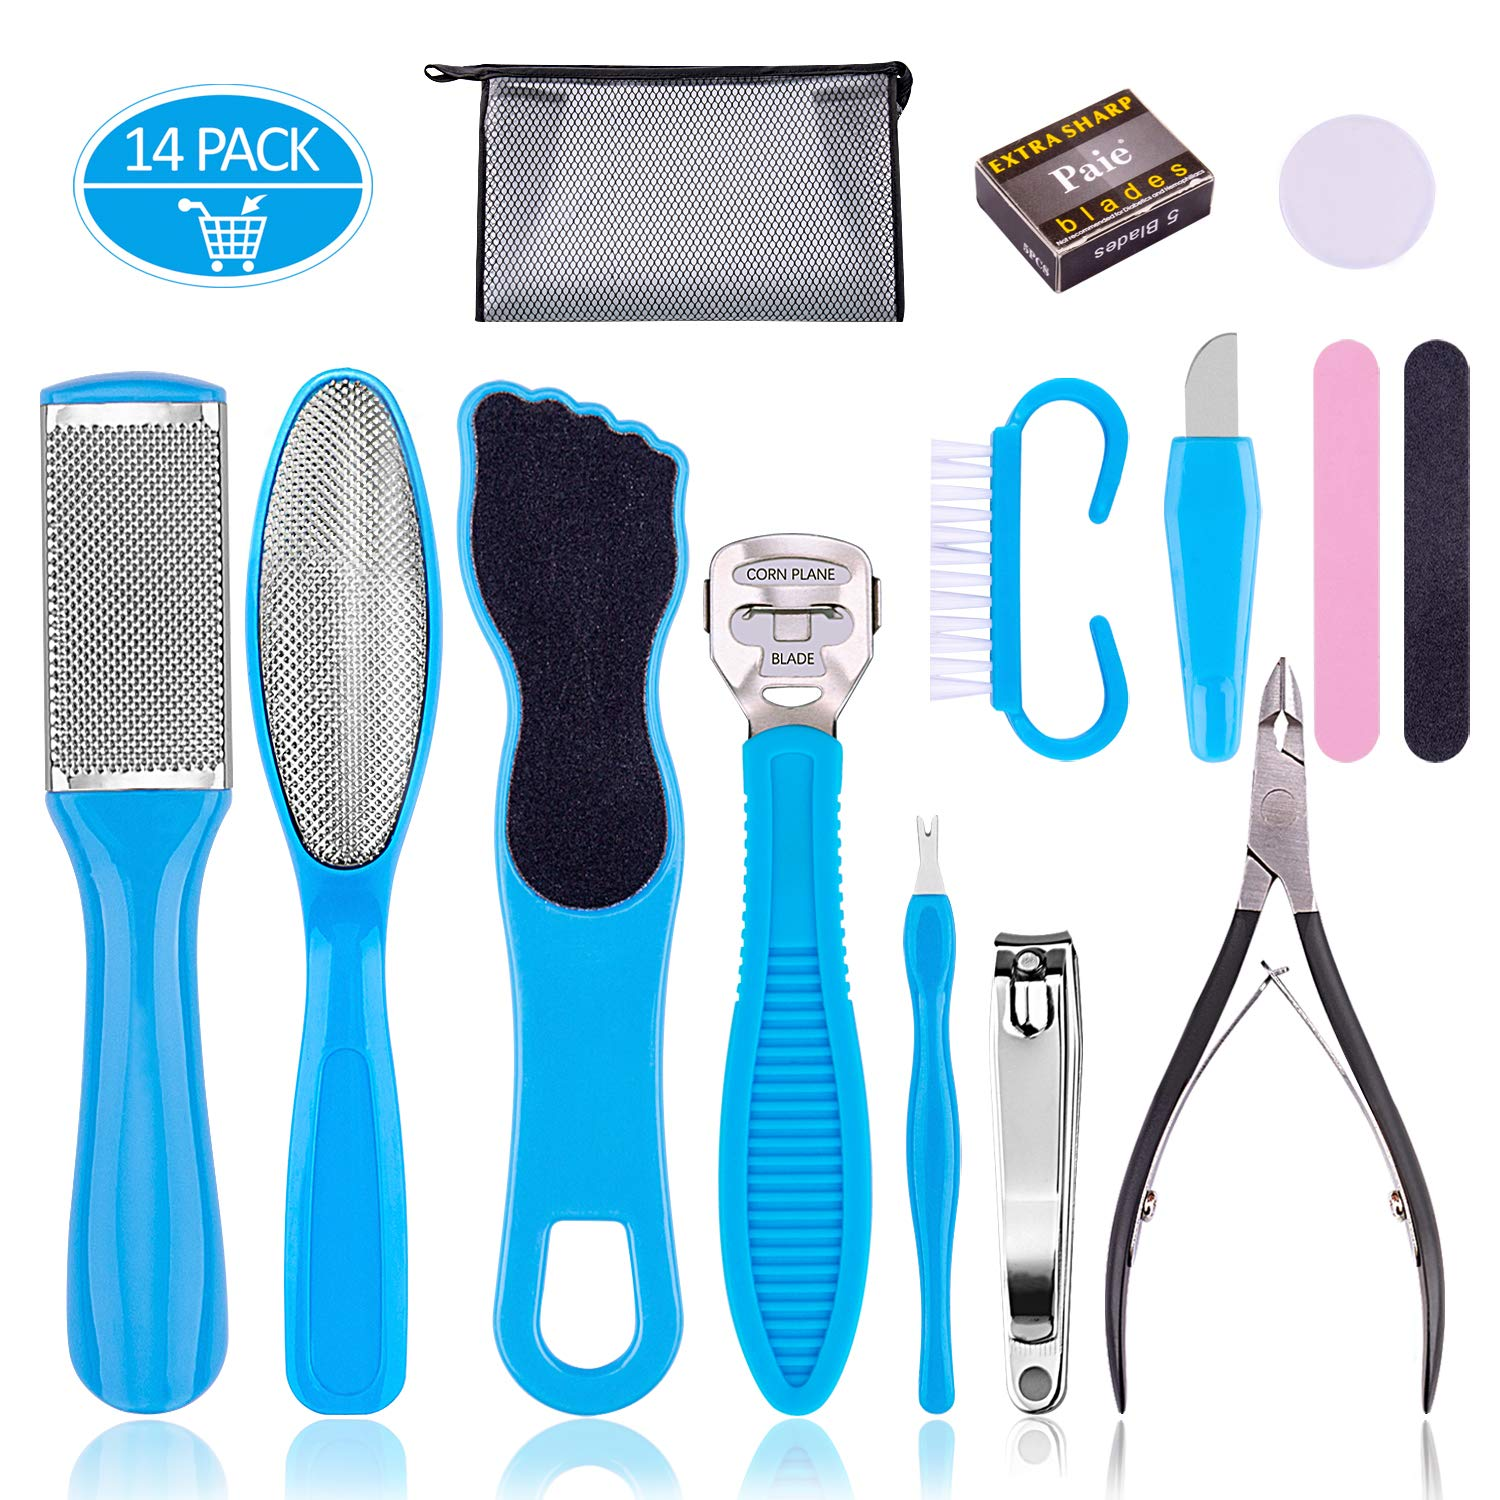 Professional Pedicure Tools Set 14 in 1, Inpher Stainless Steel Foot Rasp Foot Peel and Callus Clean Feet Dead Skin Tool Set, Nail Toenail Clipper Foot Care Kit for Women Men Salon or Home